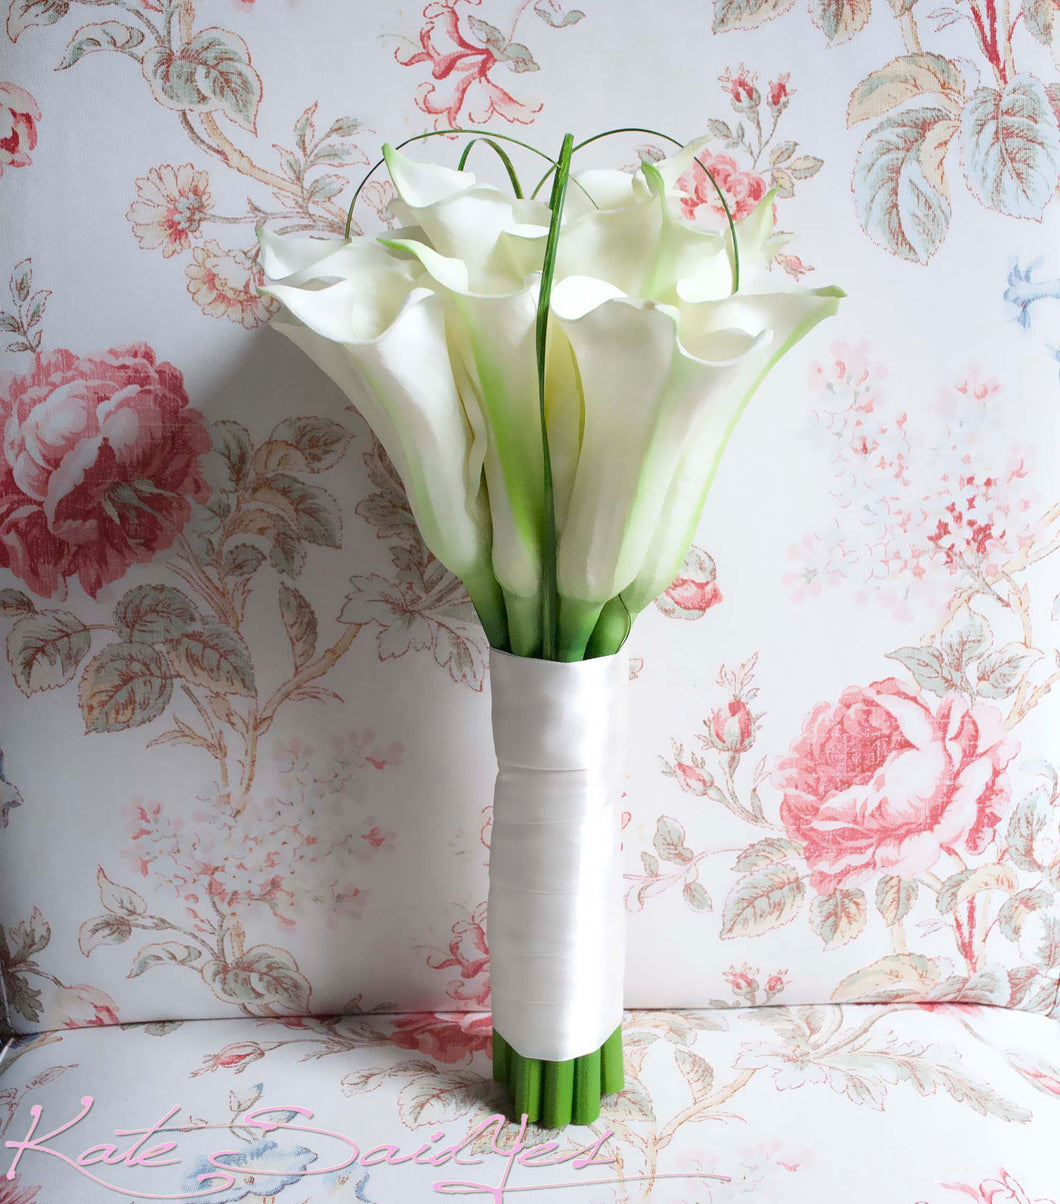 Bridal Bouquet - Large Ivory Calla Lily Bouquet - Real Touch Calla Lily Wedding Bouquet